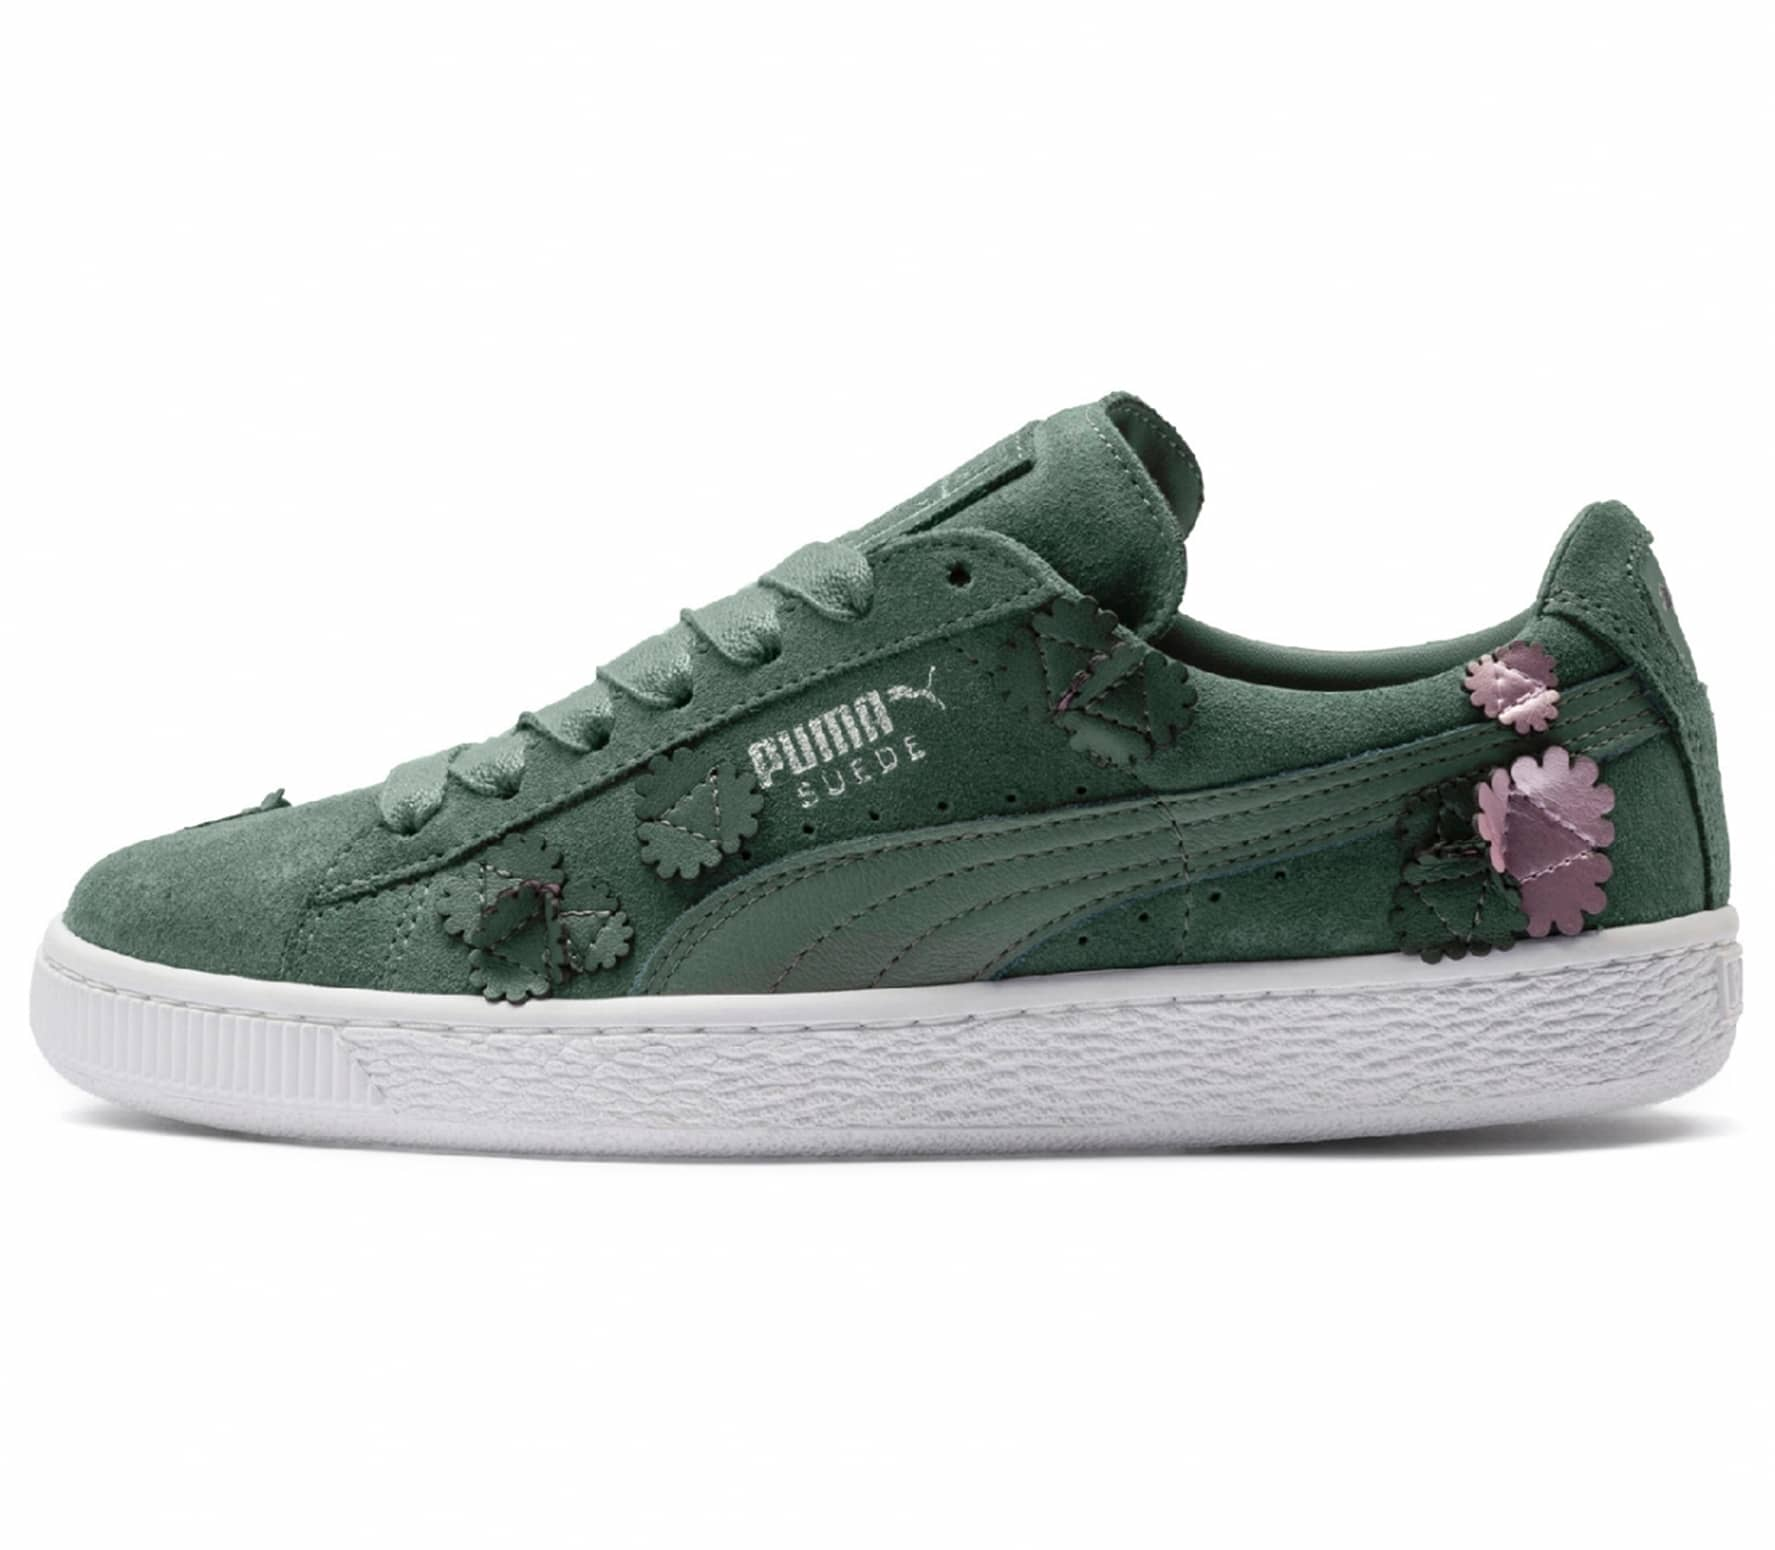 Puma Suede Classic Aut Bloom women s trainers (olive green) online ... 82c11ae5a